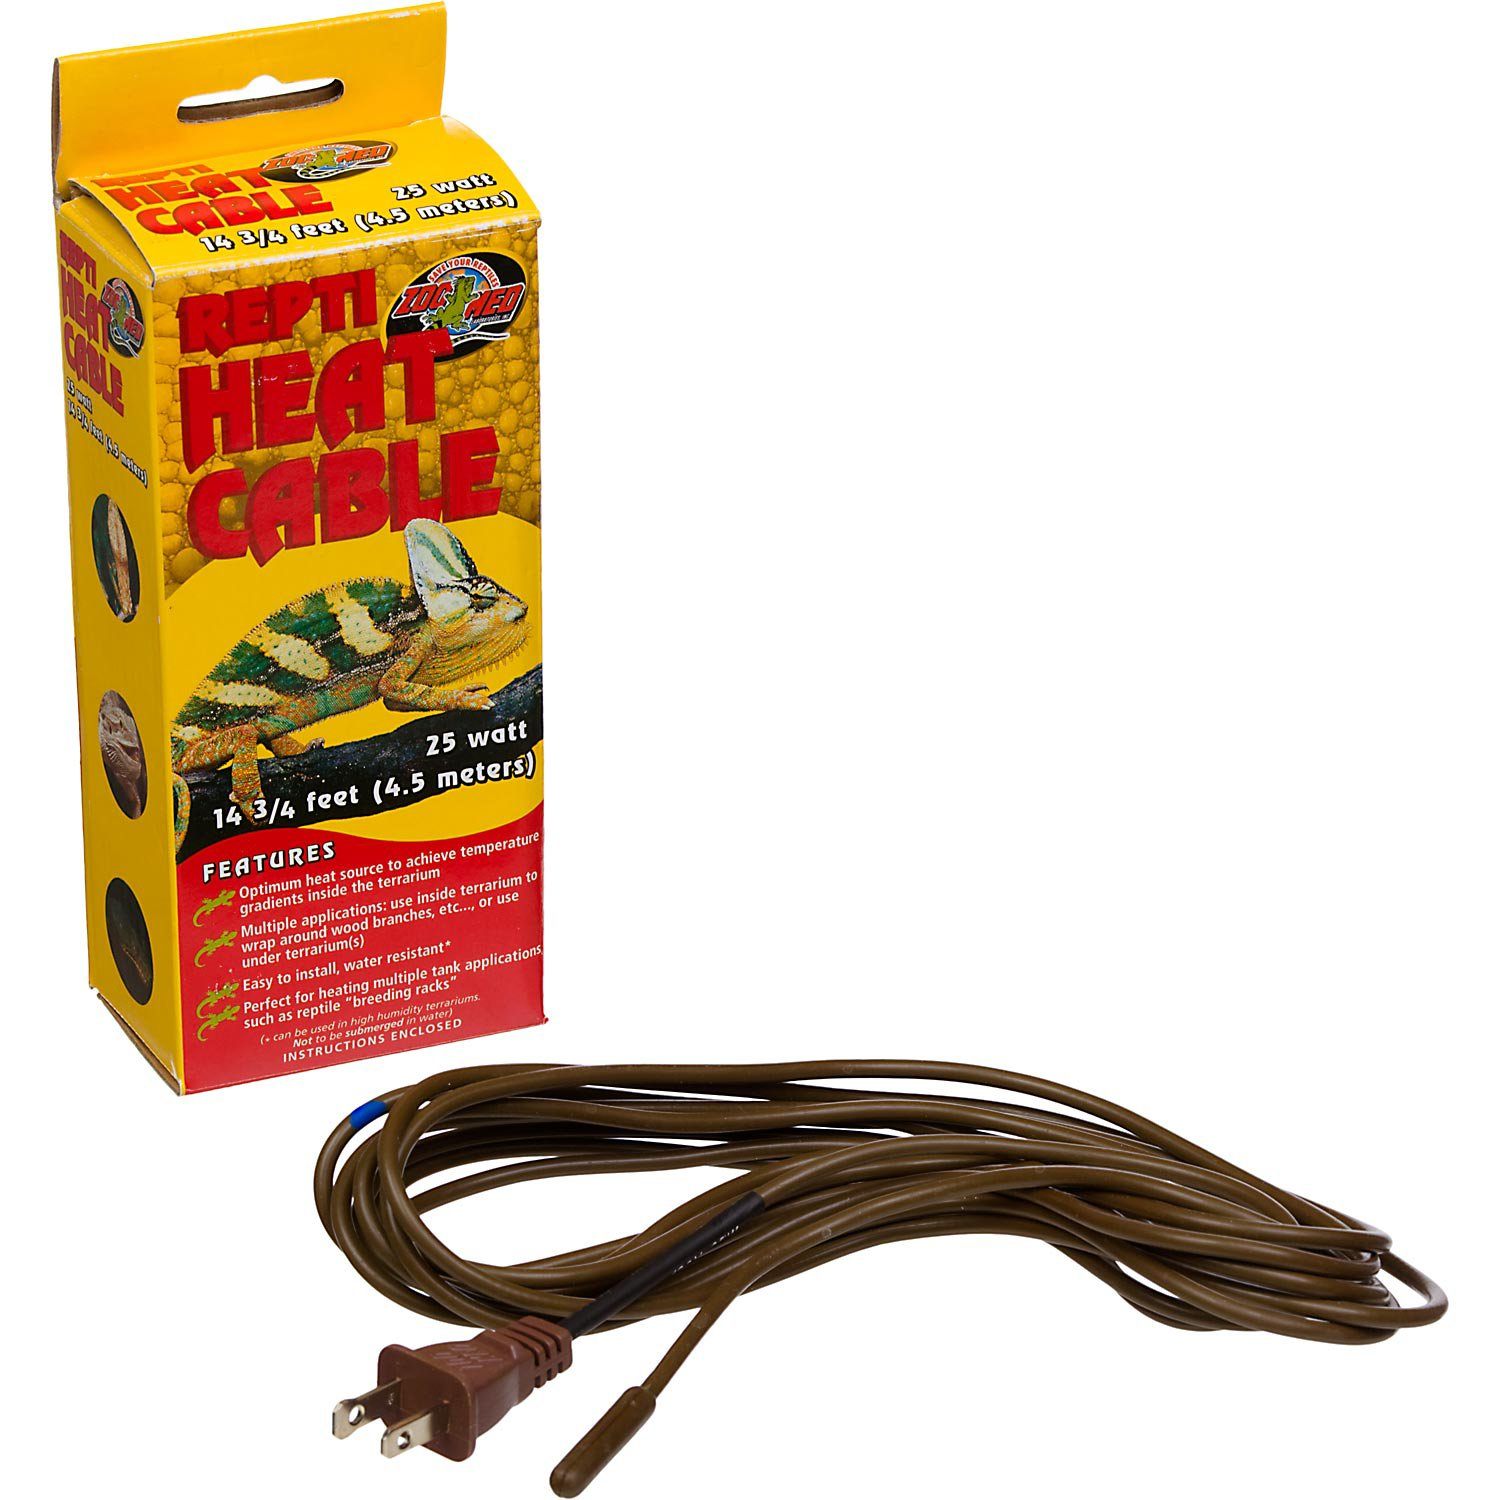 Zoo Med Repti Heat Cable 14 75 Length Petco